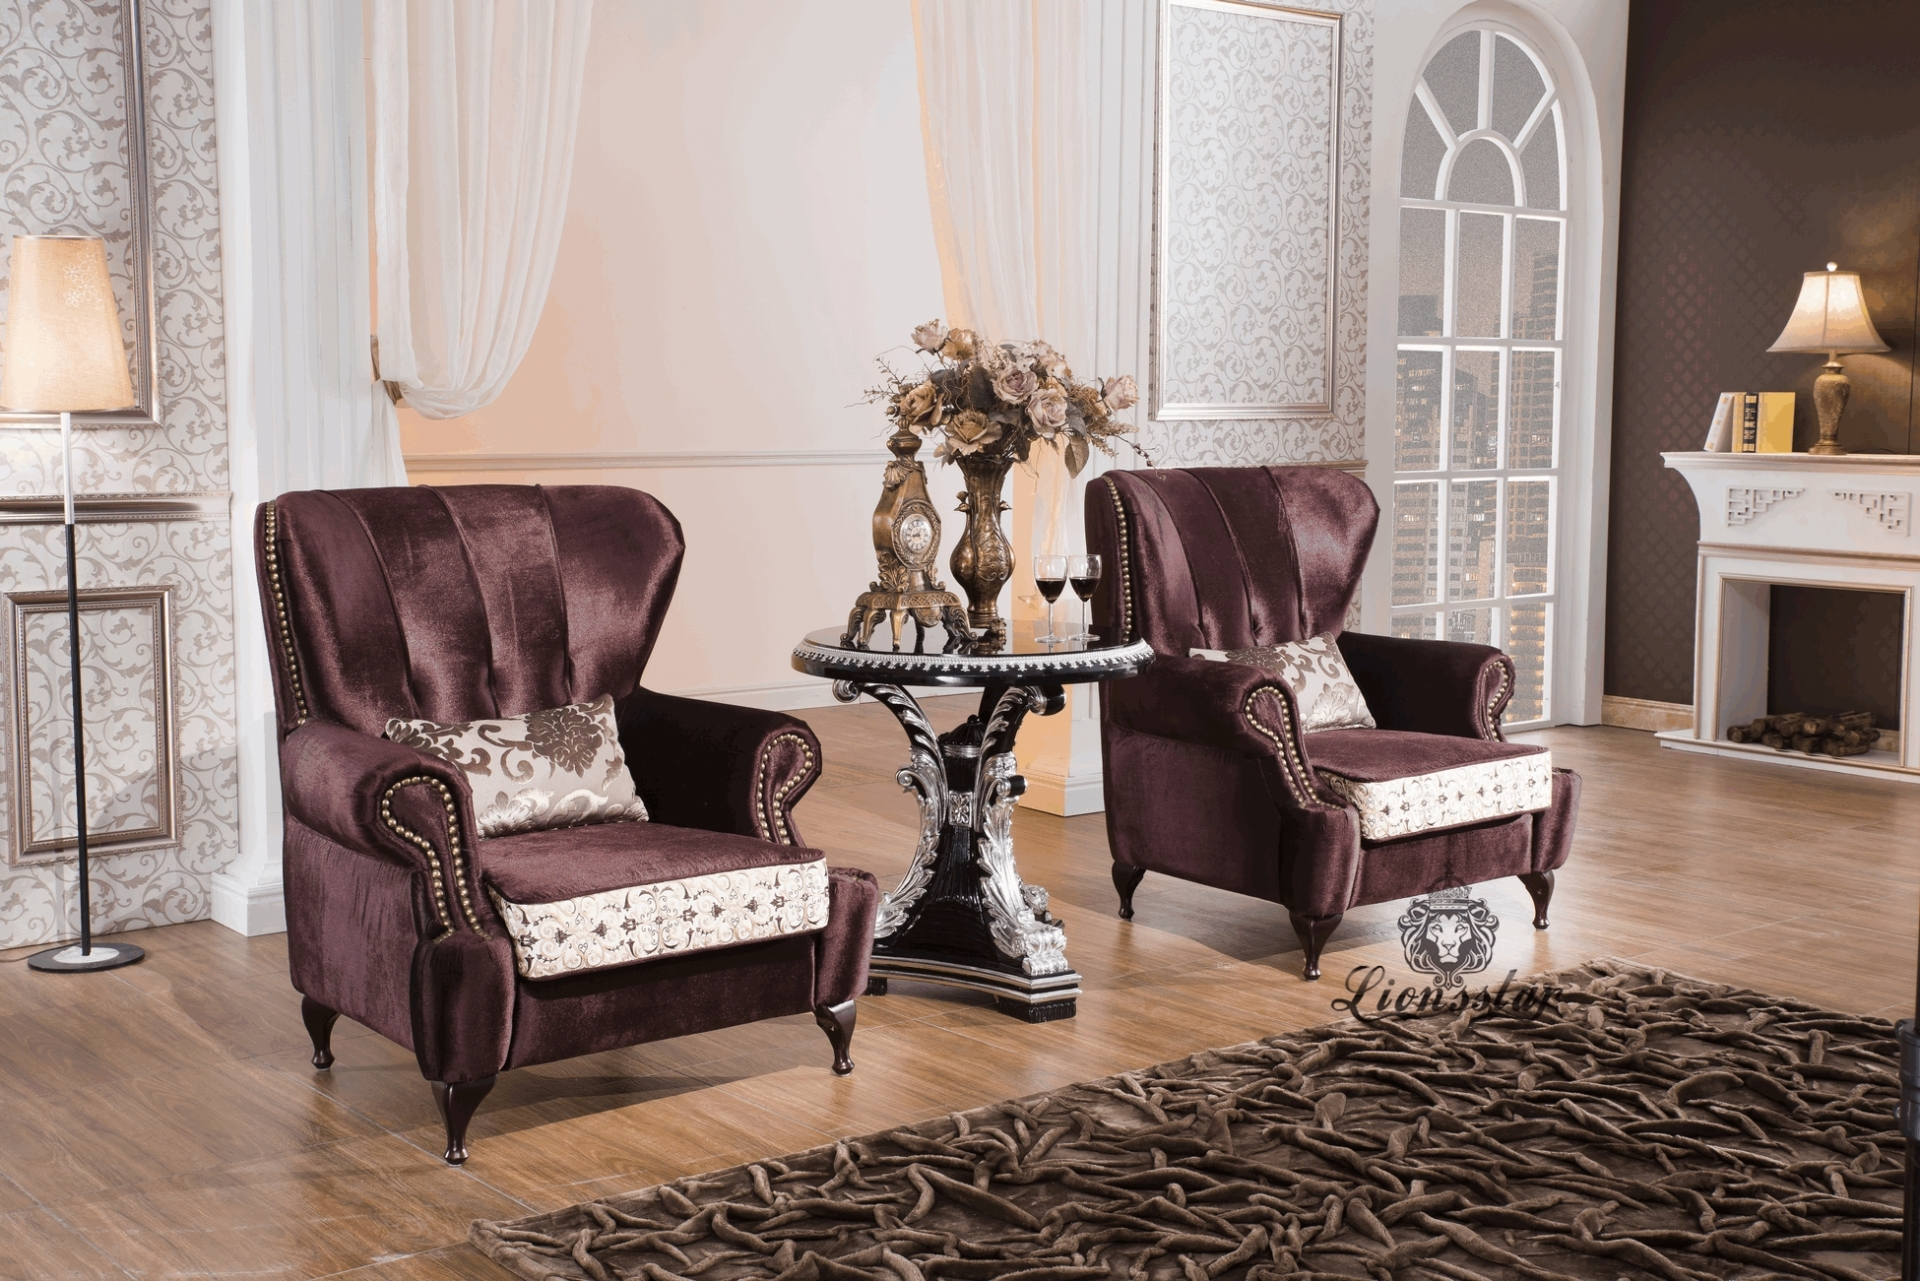 wohnzimmer m bel luxus genie en lionsstar gmbh. Black Bedroom Furniture Sets. Home Design Ideas